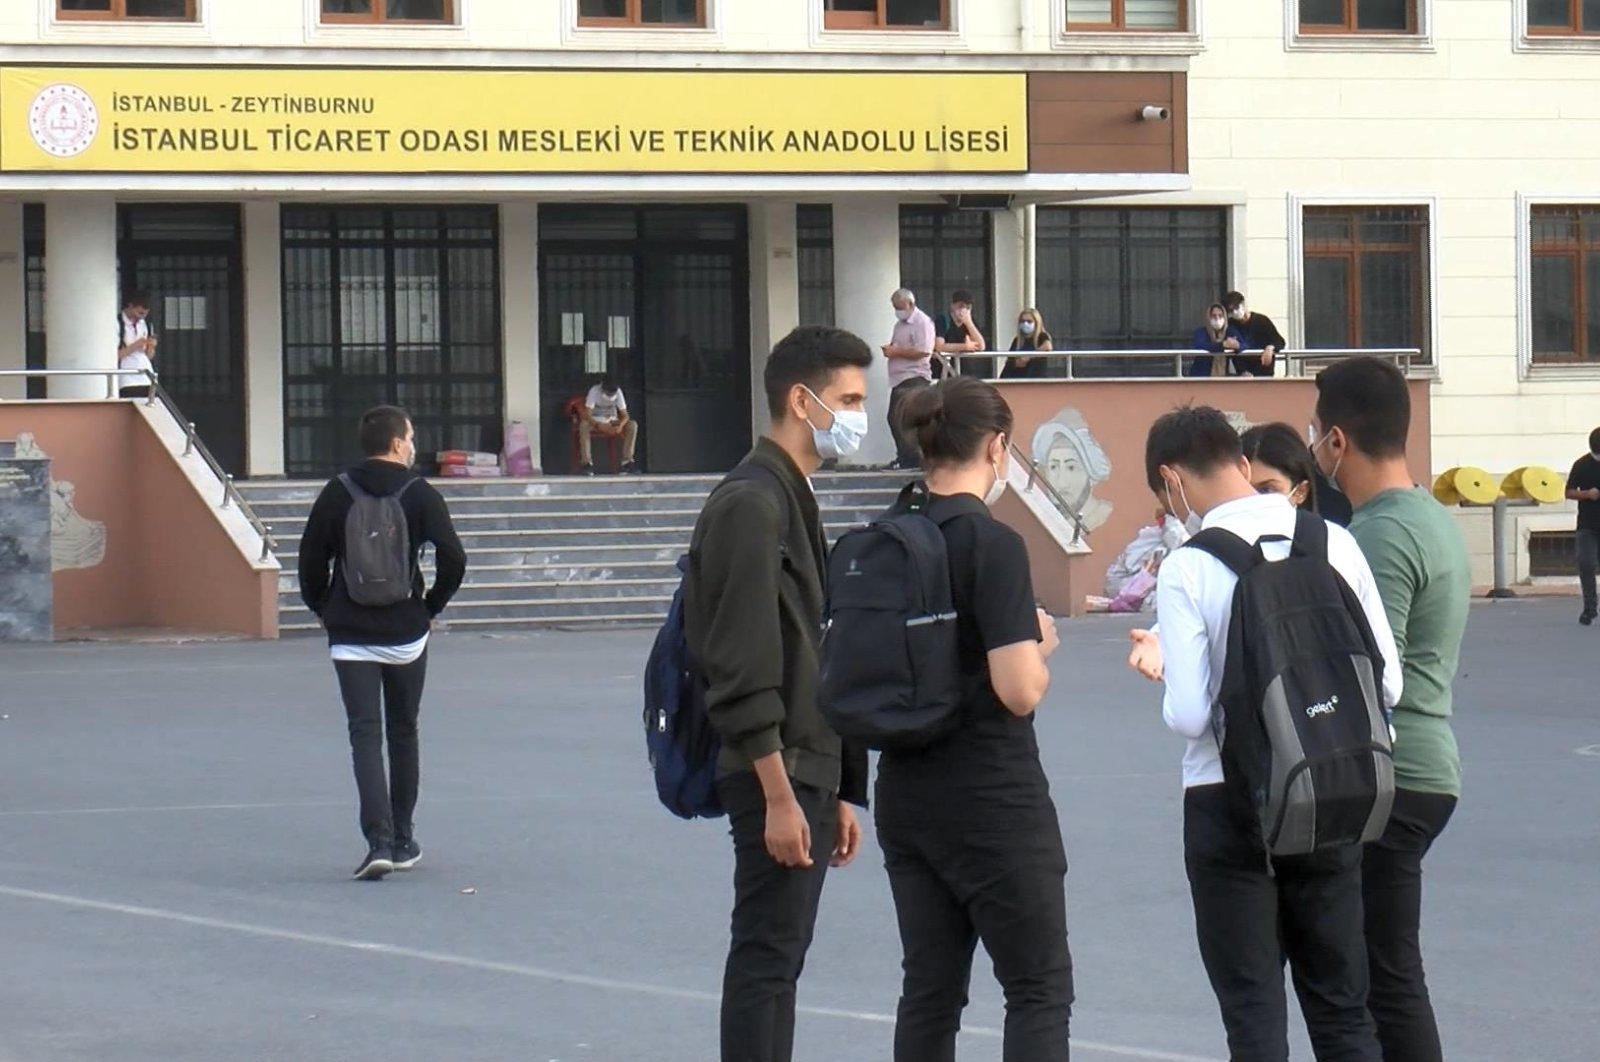 Students wear masks outside a vocational school in the Zeytinburnu district of Istanbul, Turkey, Oct. 5, 2020. (DHA Photo)